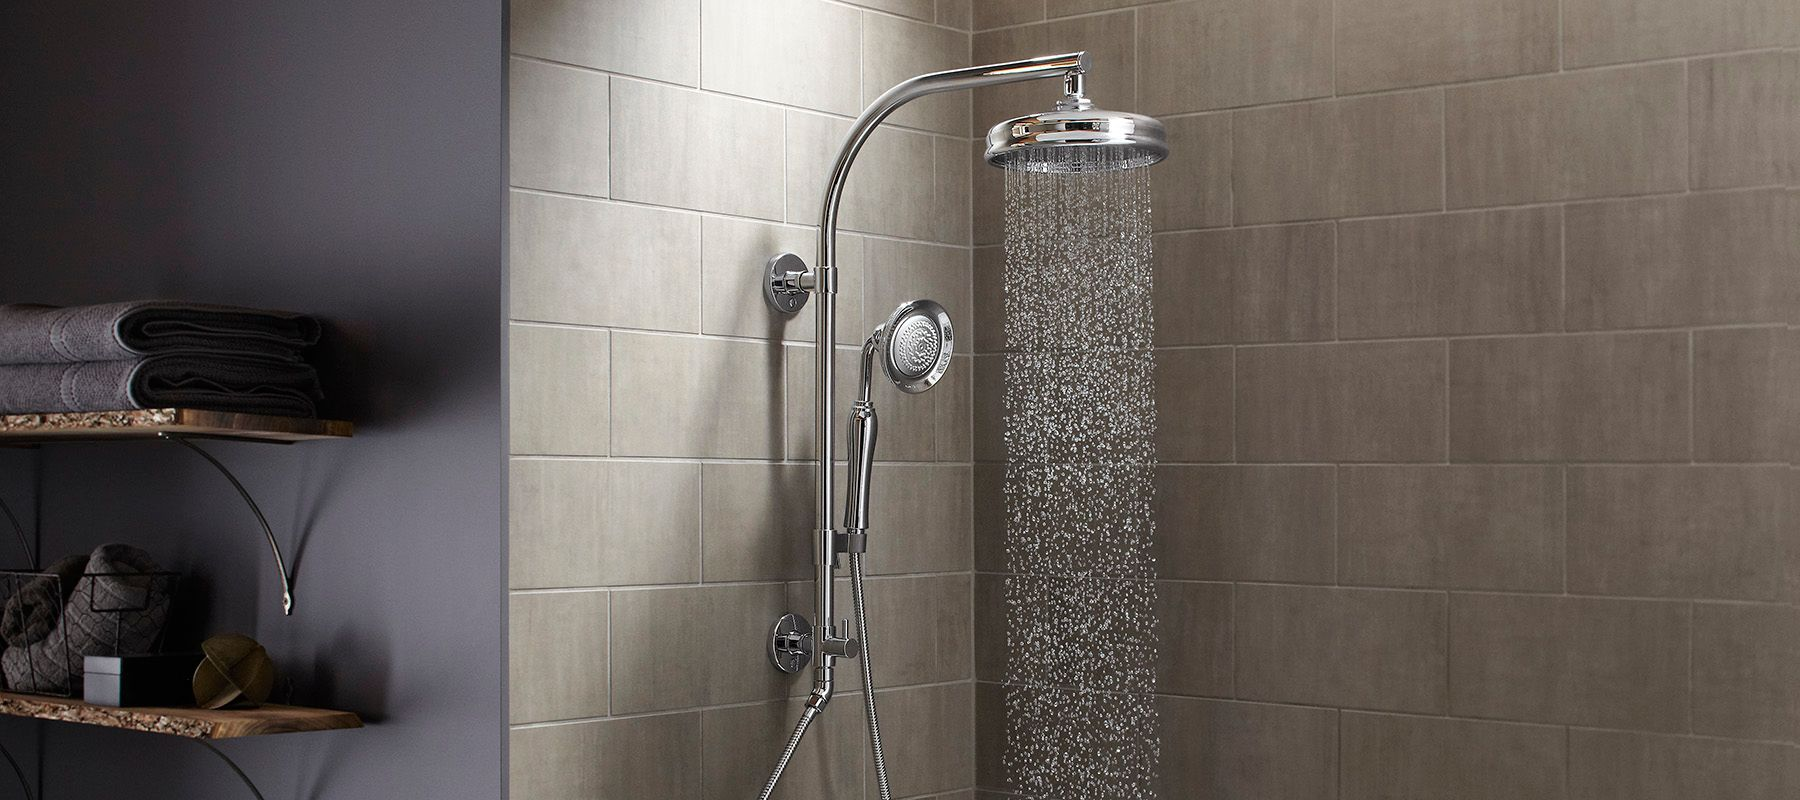 Bathroom shower systems